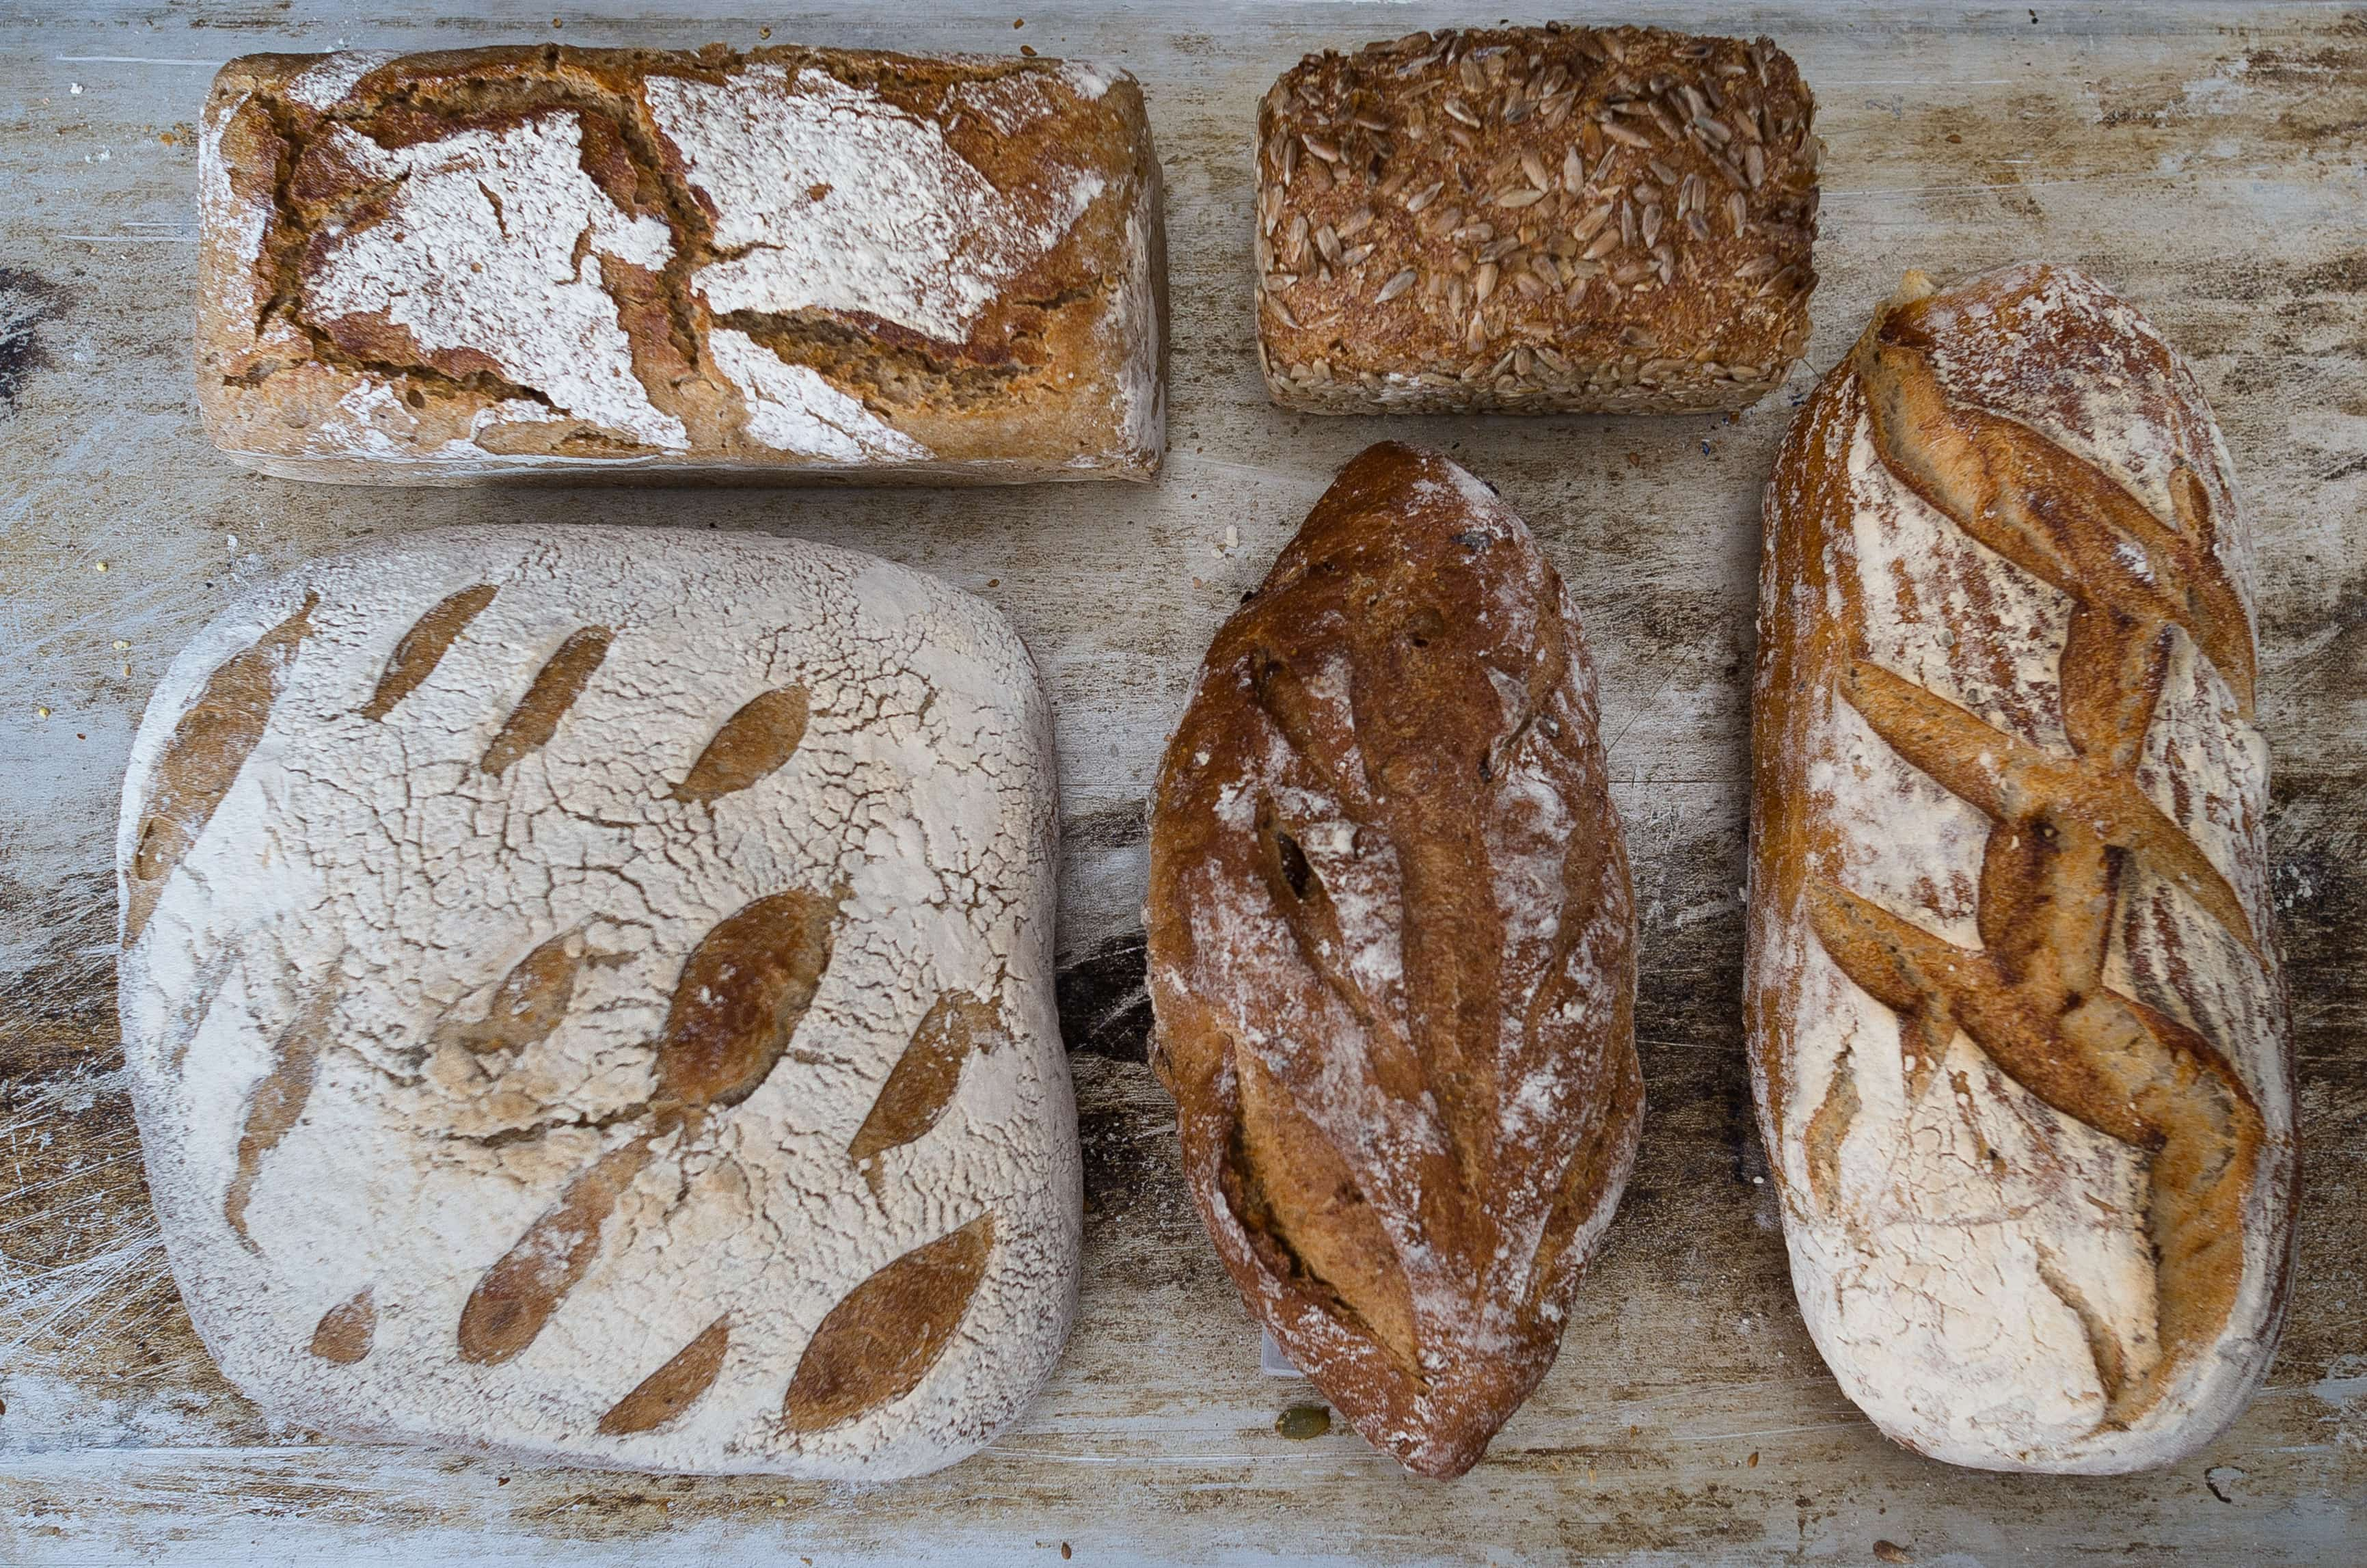 Glyphosate Is One Of Three Pesticides Regularly Found In Routine Testing Of British Bread Appearing In Up To Two Thirds Of Wholemeal Bread Samples Tested